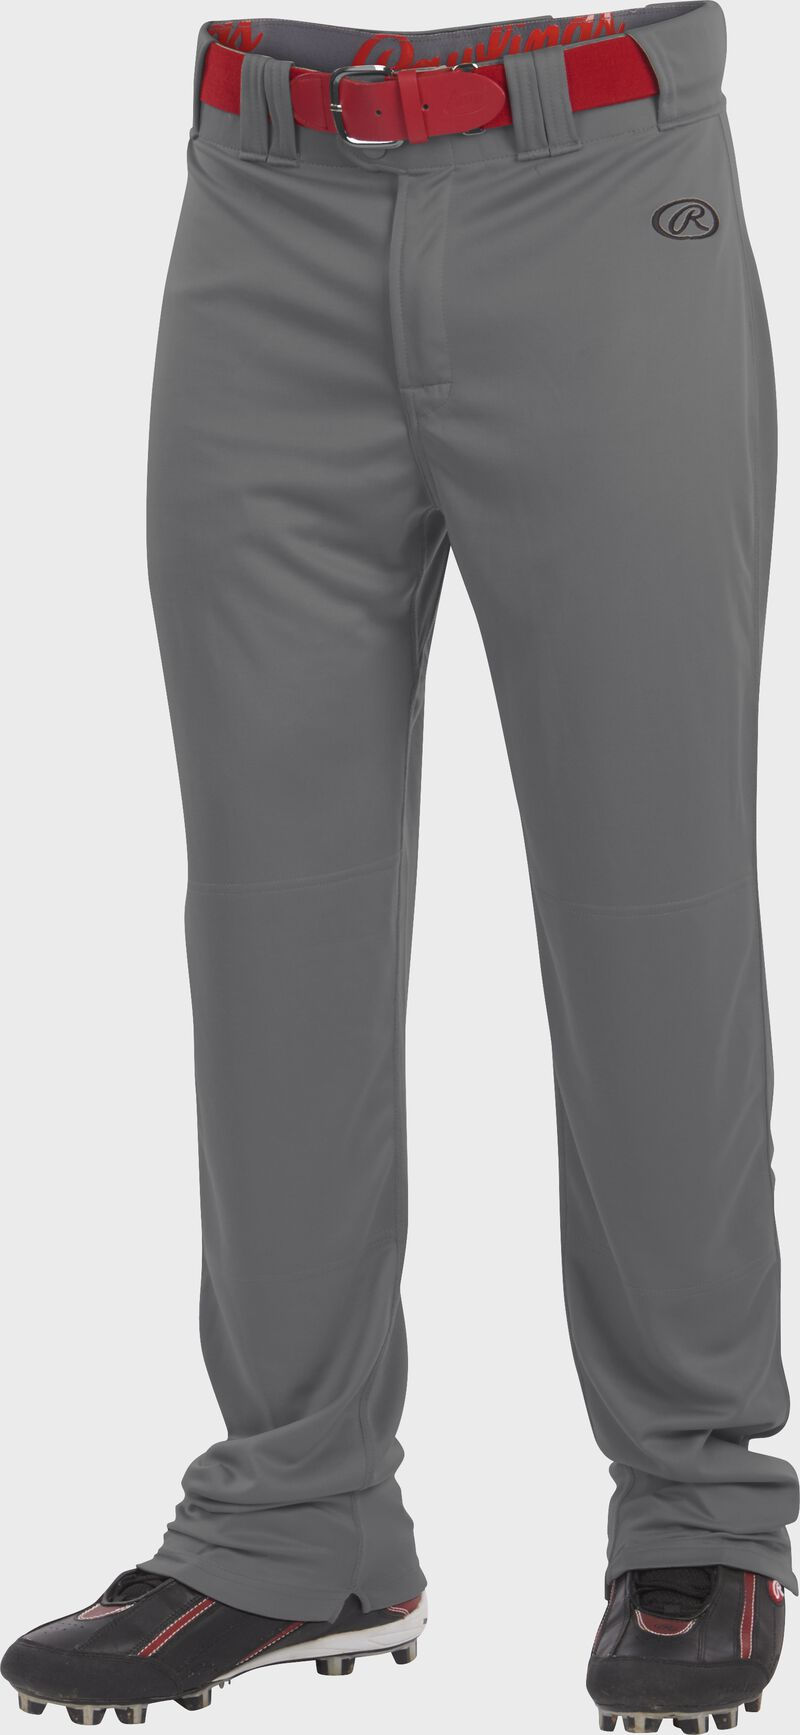 Front of Rawlings graphite Adult Launch Semi-Relaxed Pant - SKU #LNCHSR